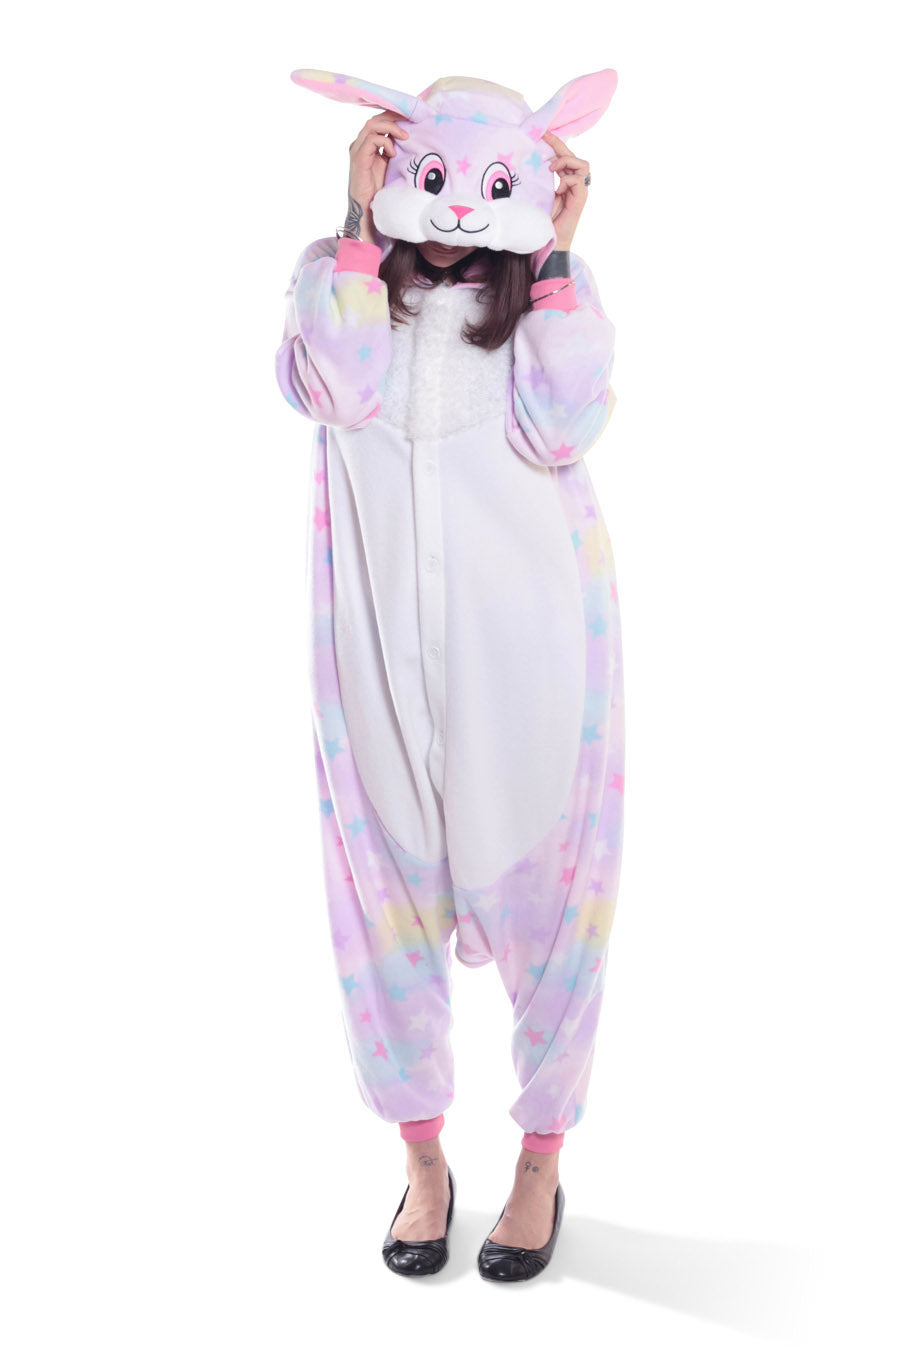 Pastel Dream Rabbit X-Tall Kigurumi Adult Onesie Costume Pajamas Animal Stars Front Main Duplicate